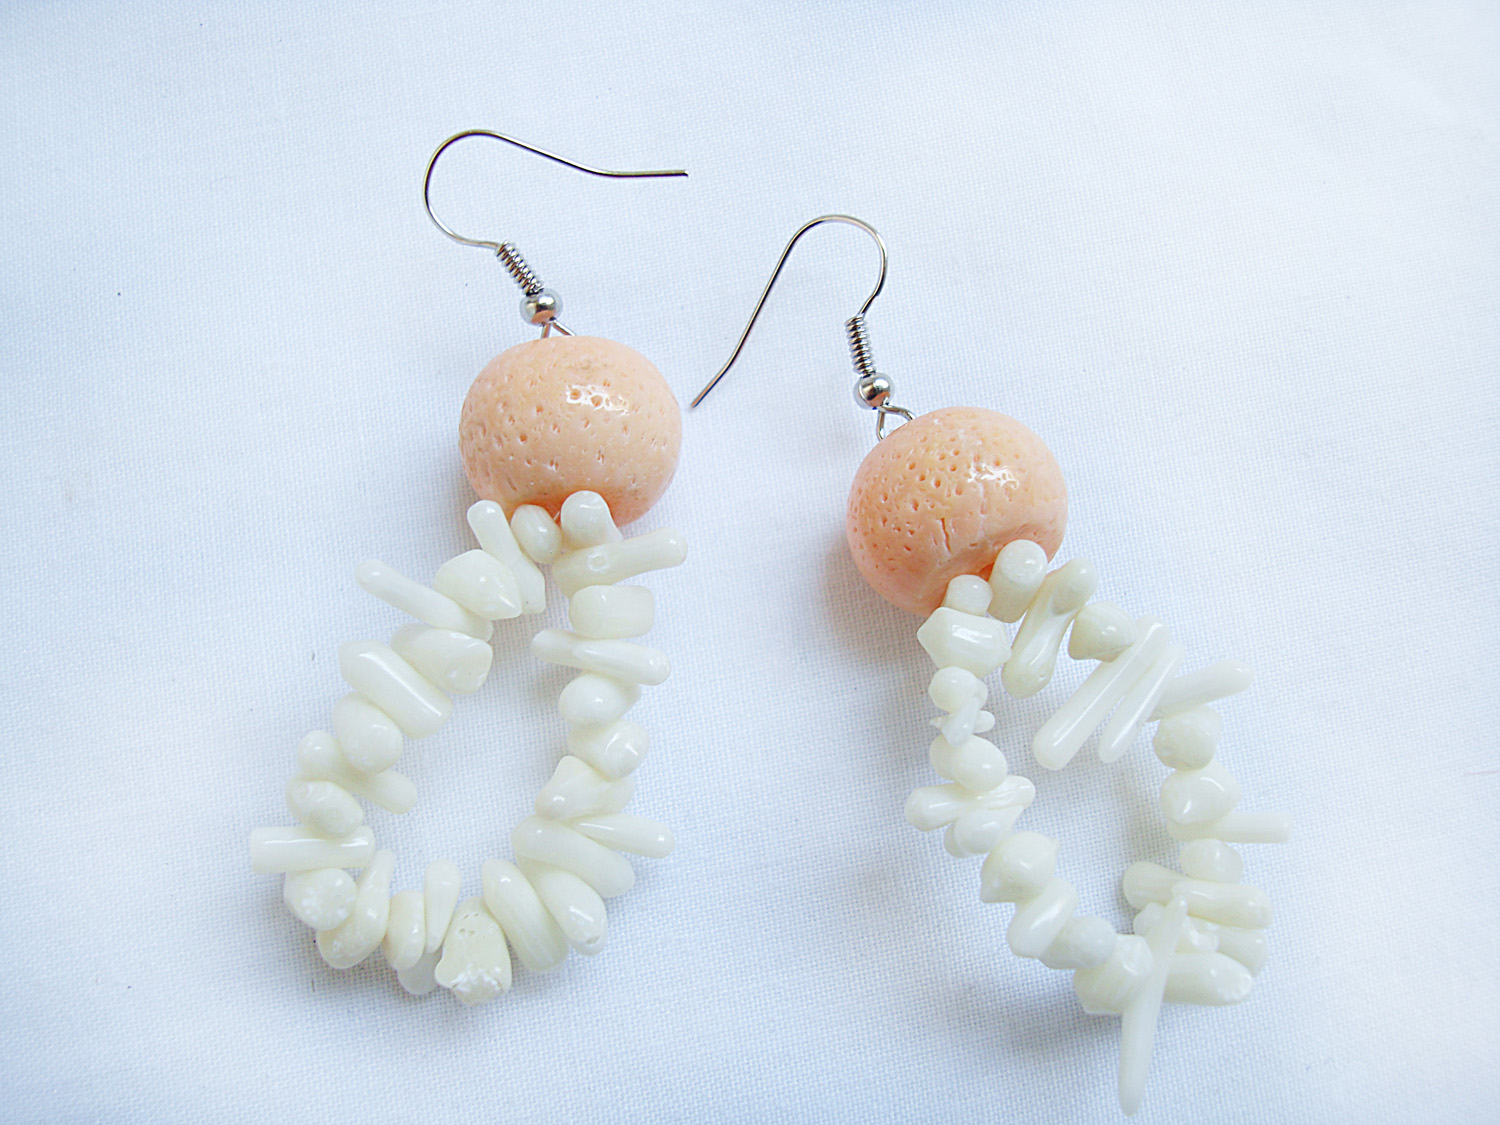 coral-reef-earrings.JPG